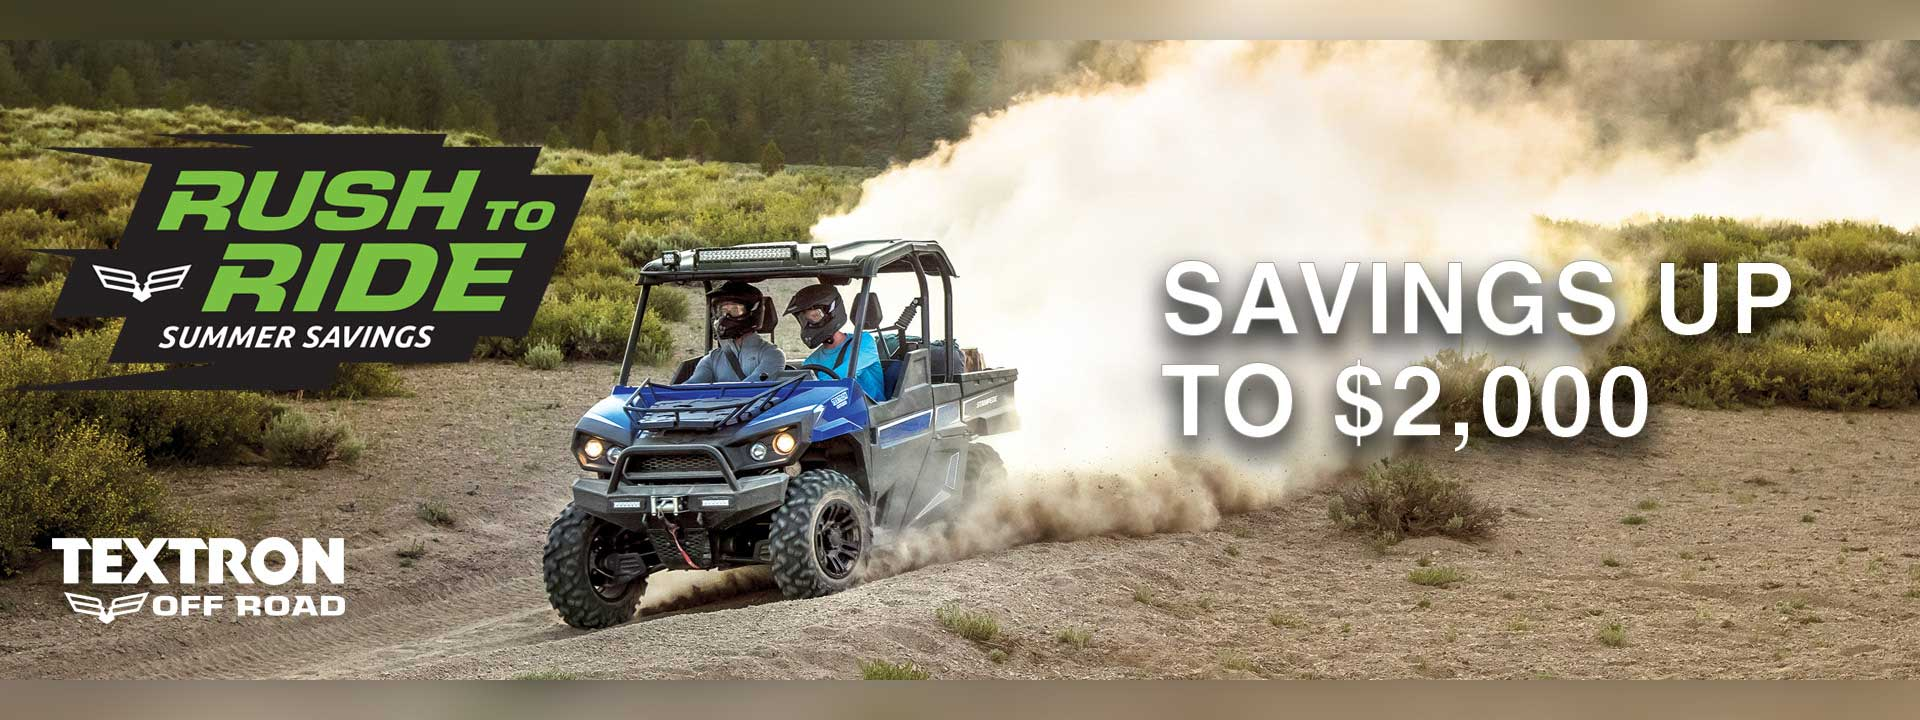 Textron off road Rush to Ride Savings up to $2000